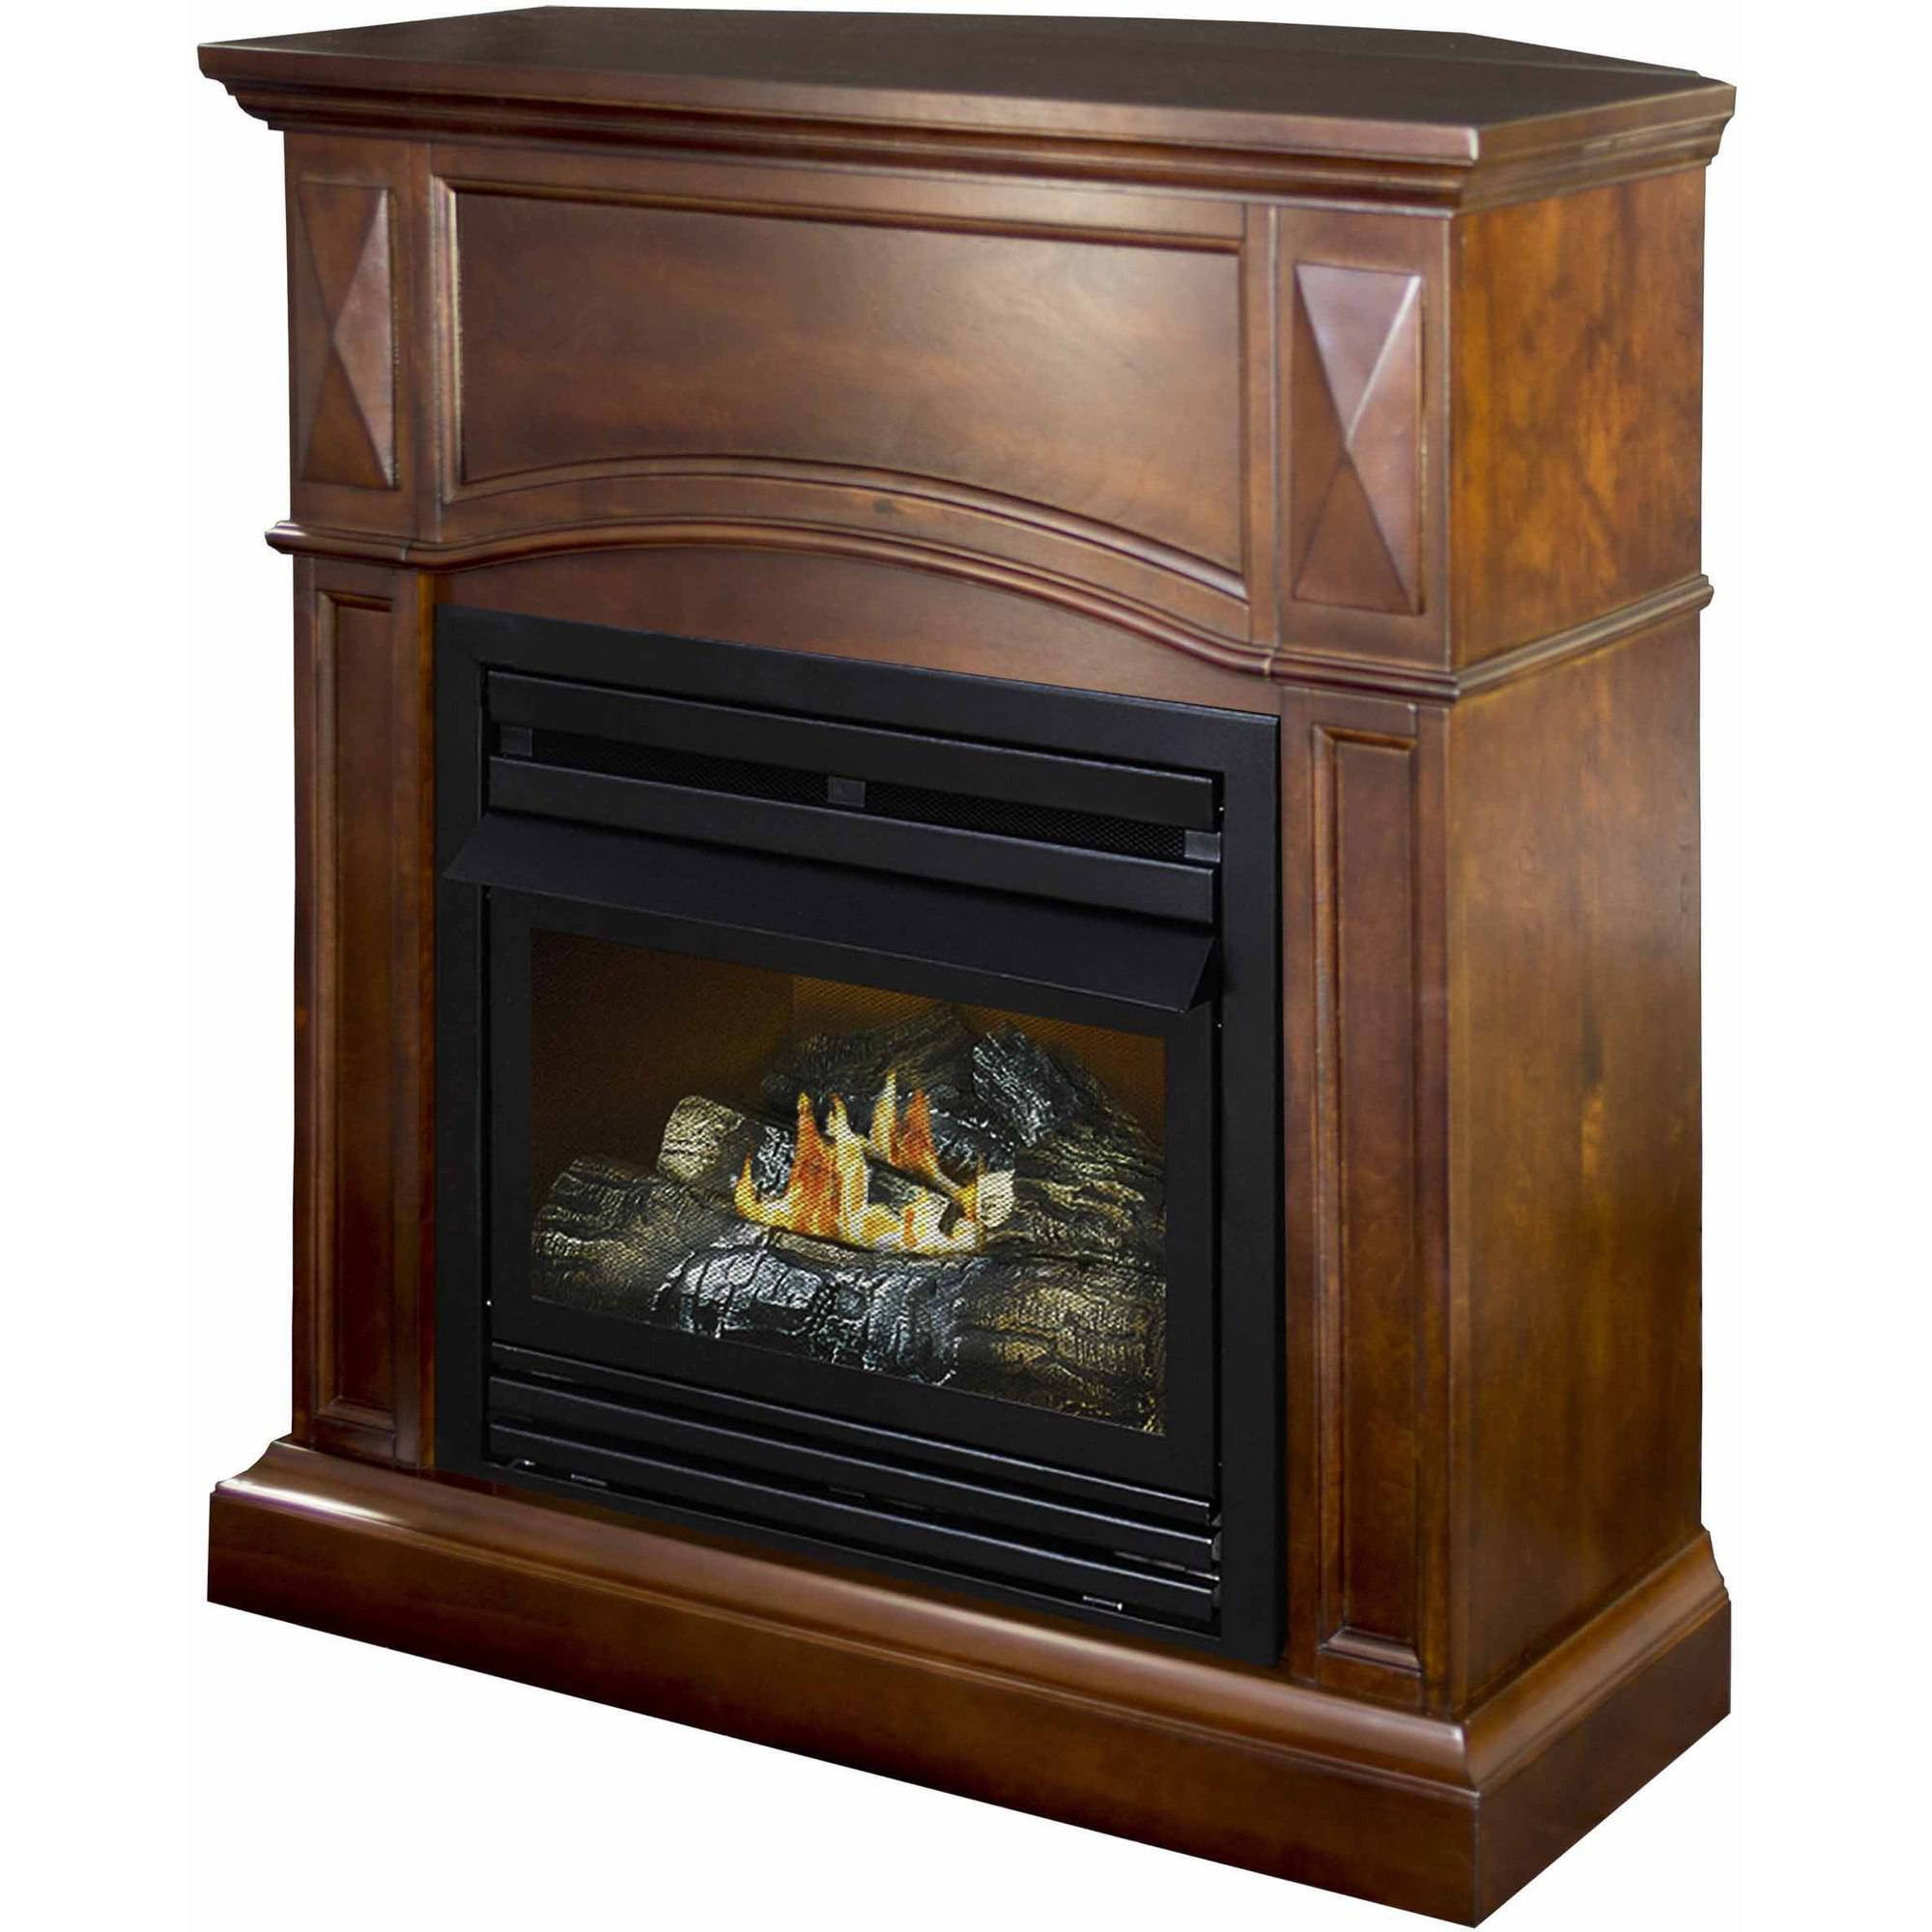 natural illusion fireplace log esperance standing ventless heaters gas fires free